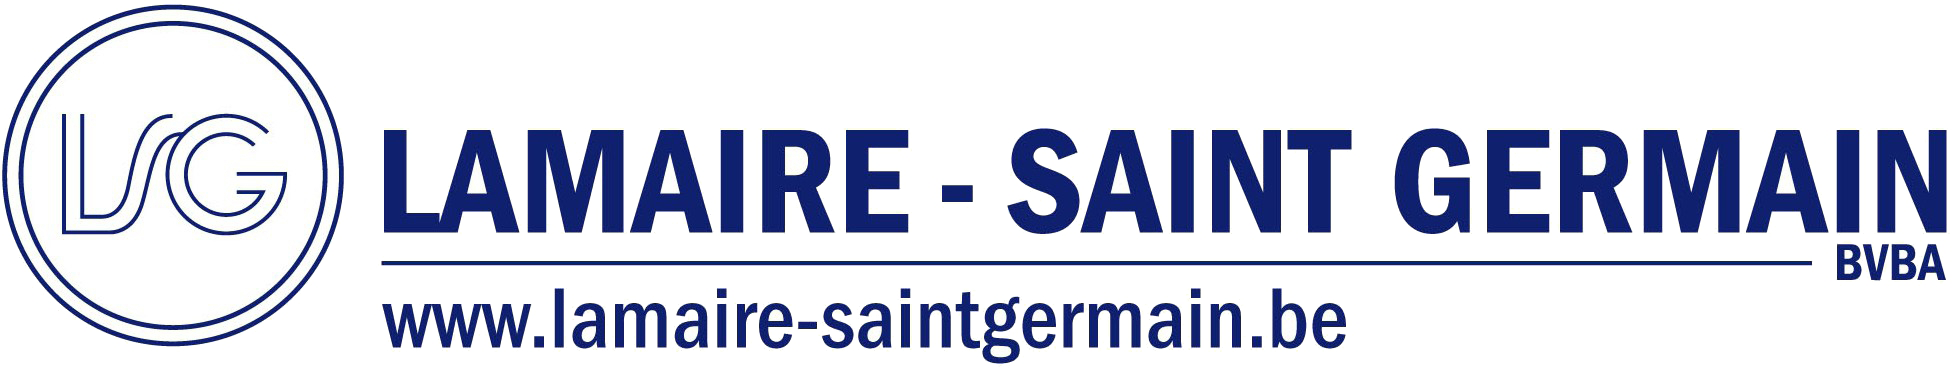 Lamaire - Saint Germain logo